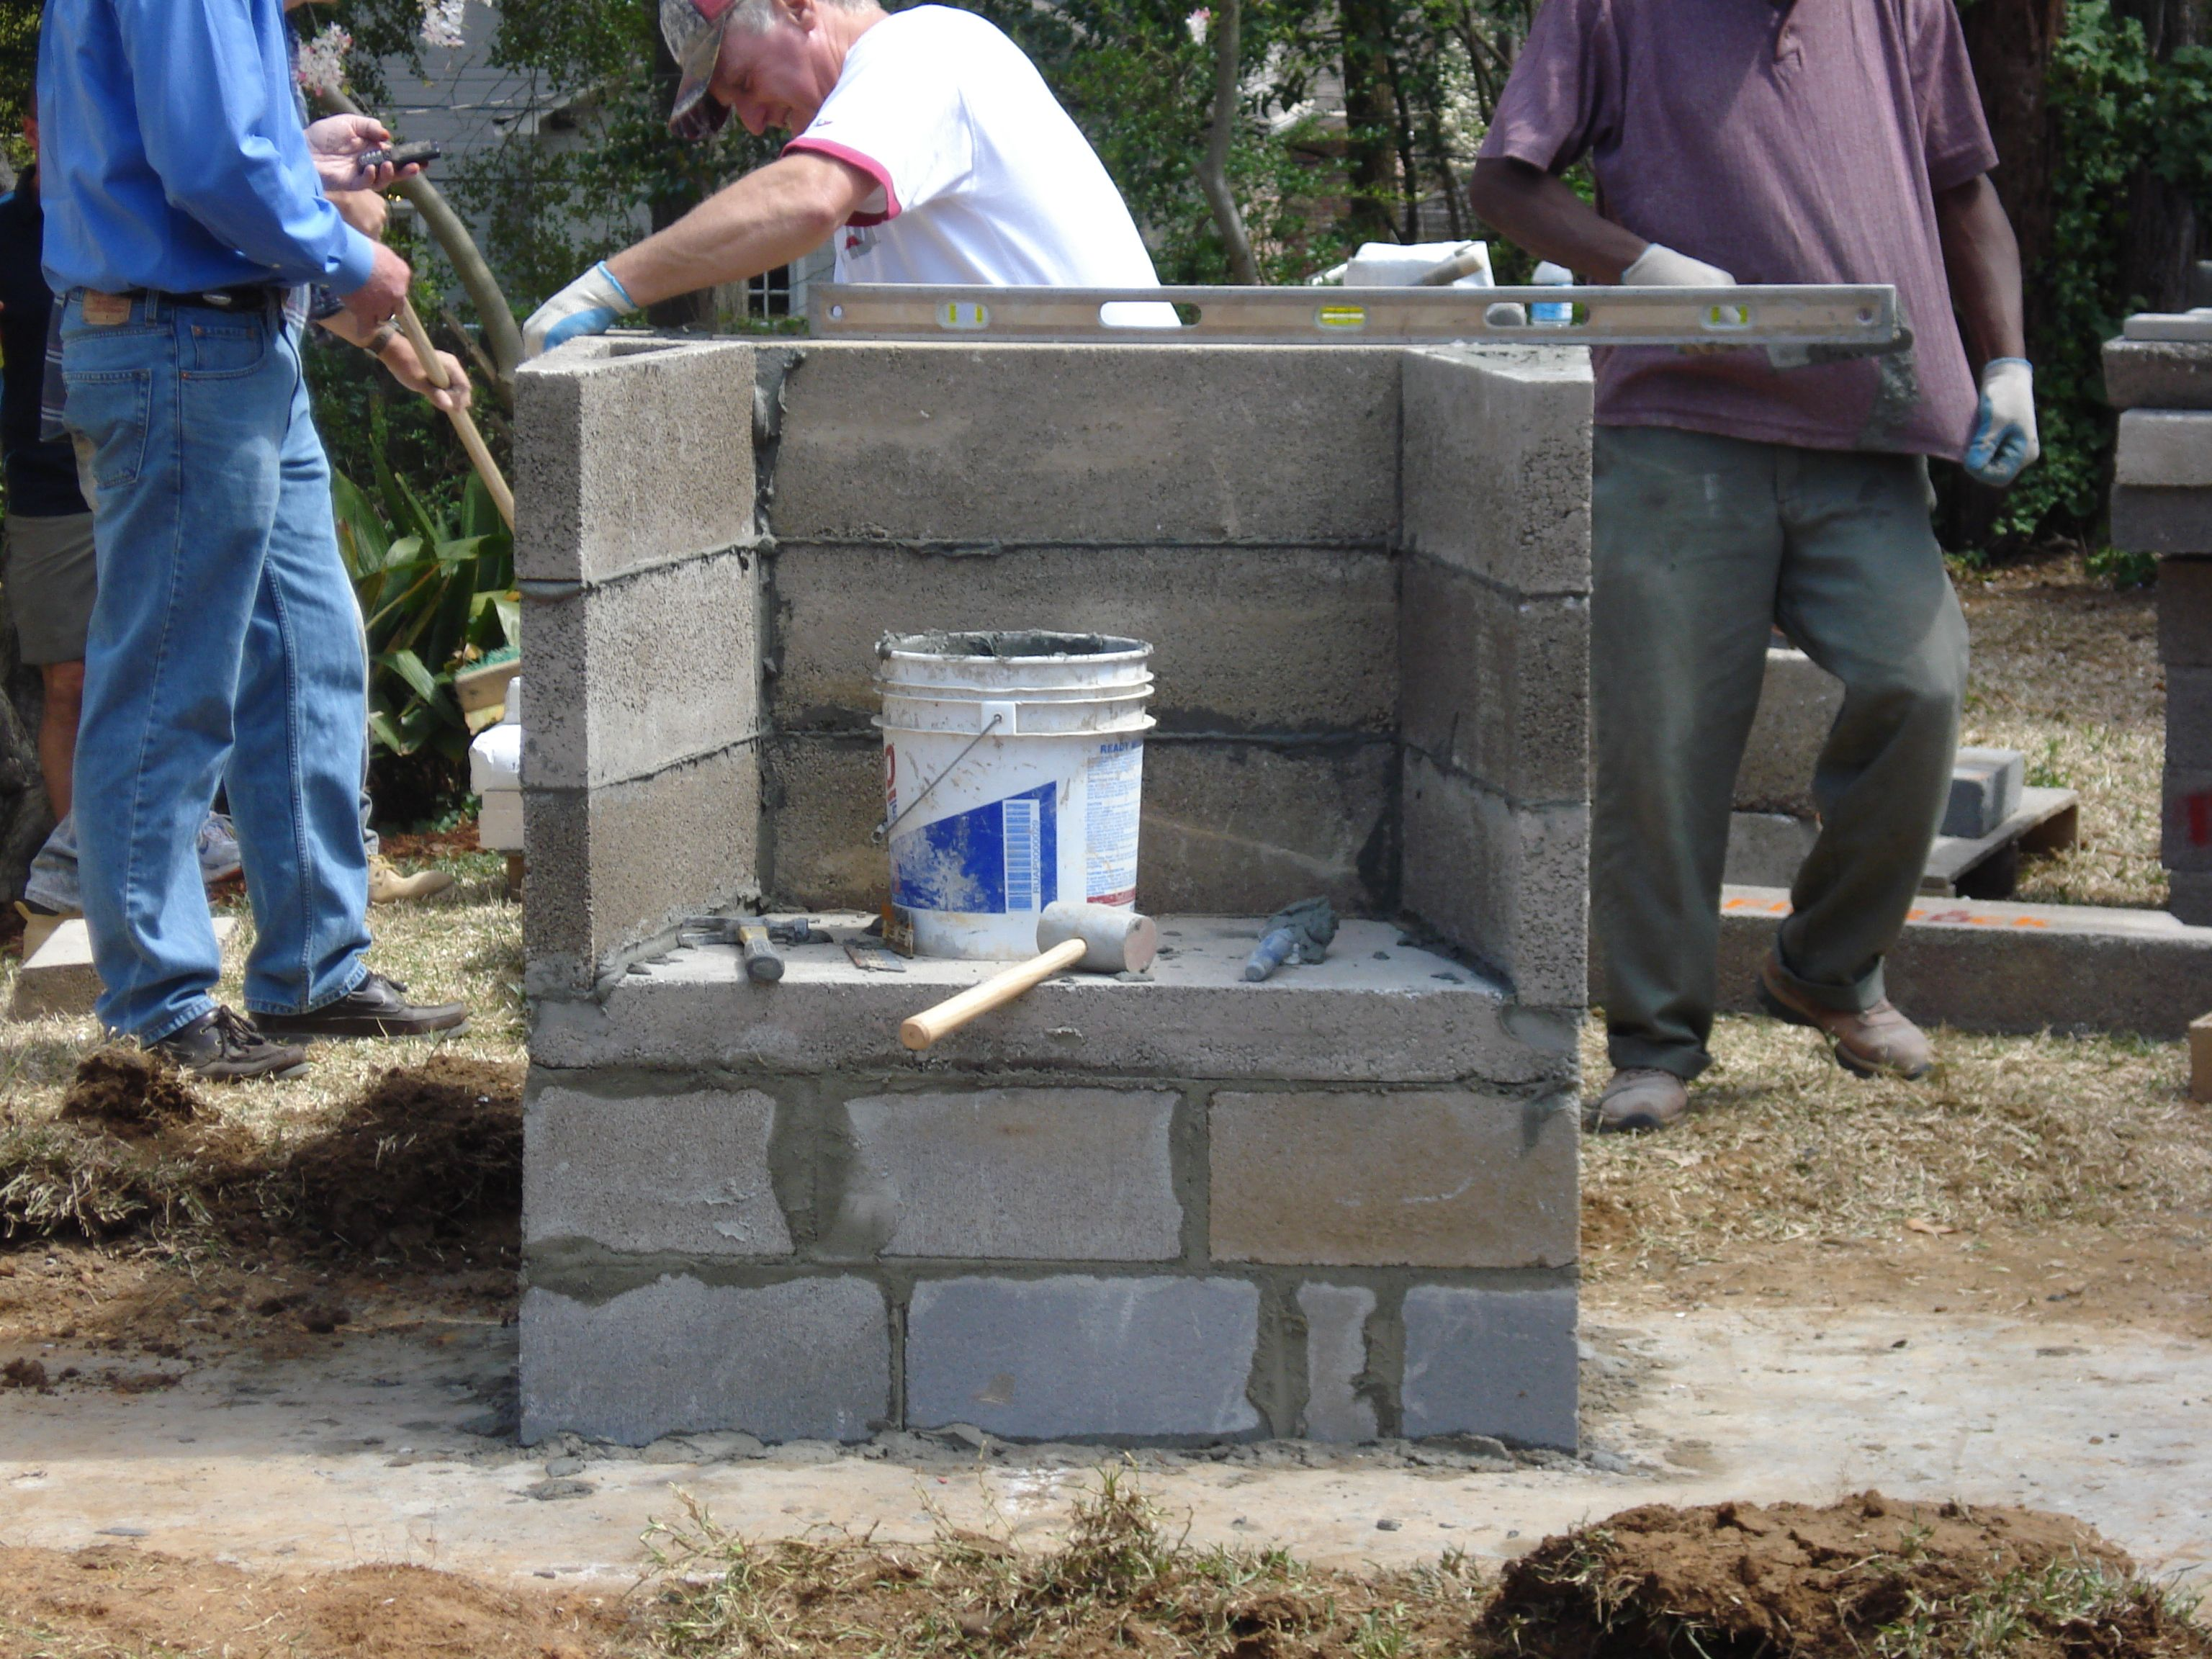 easy build outdoor fireplace - Google Search